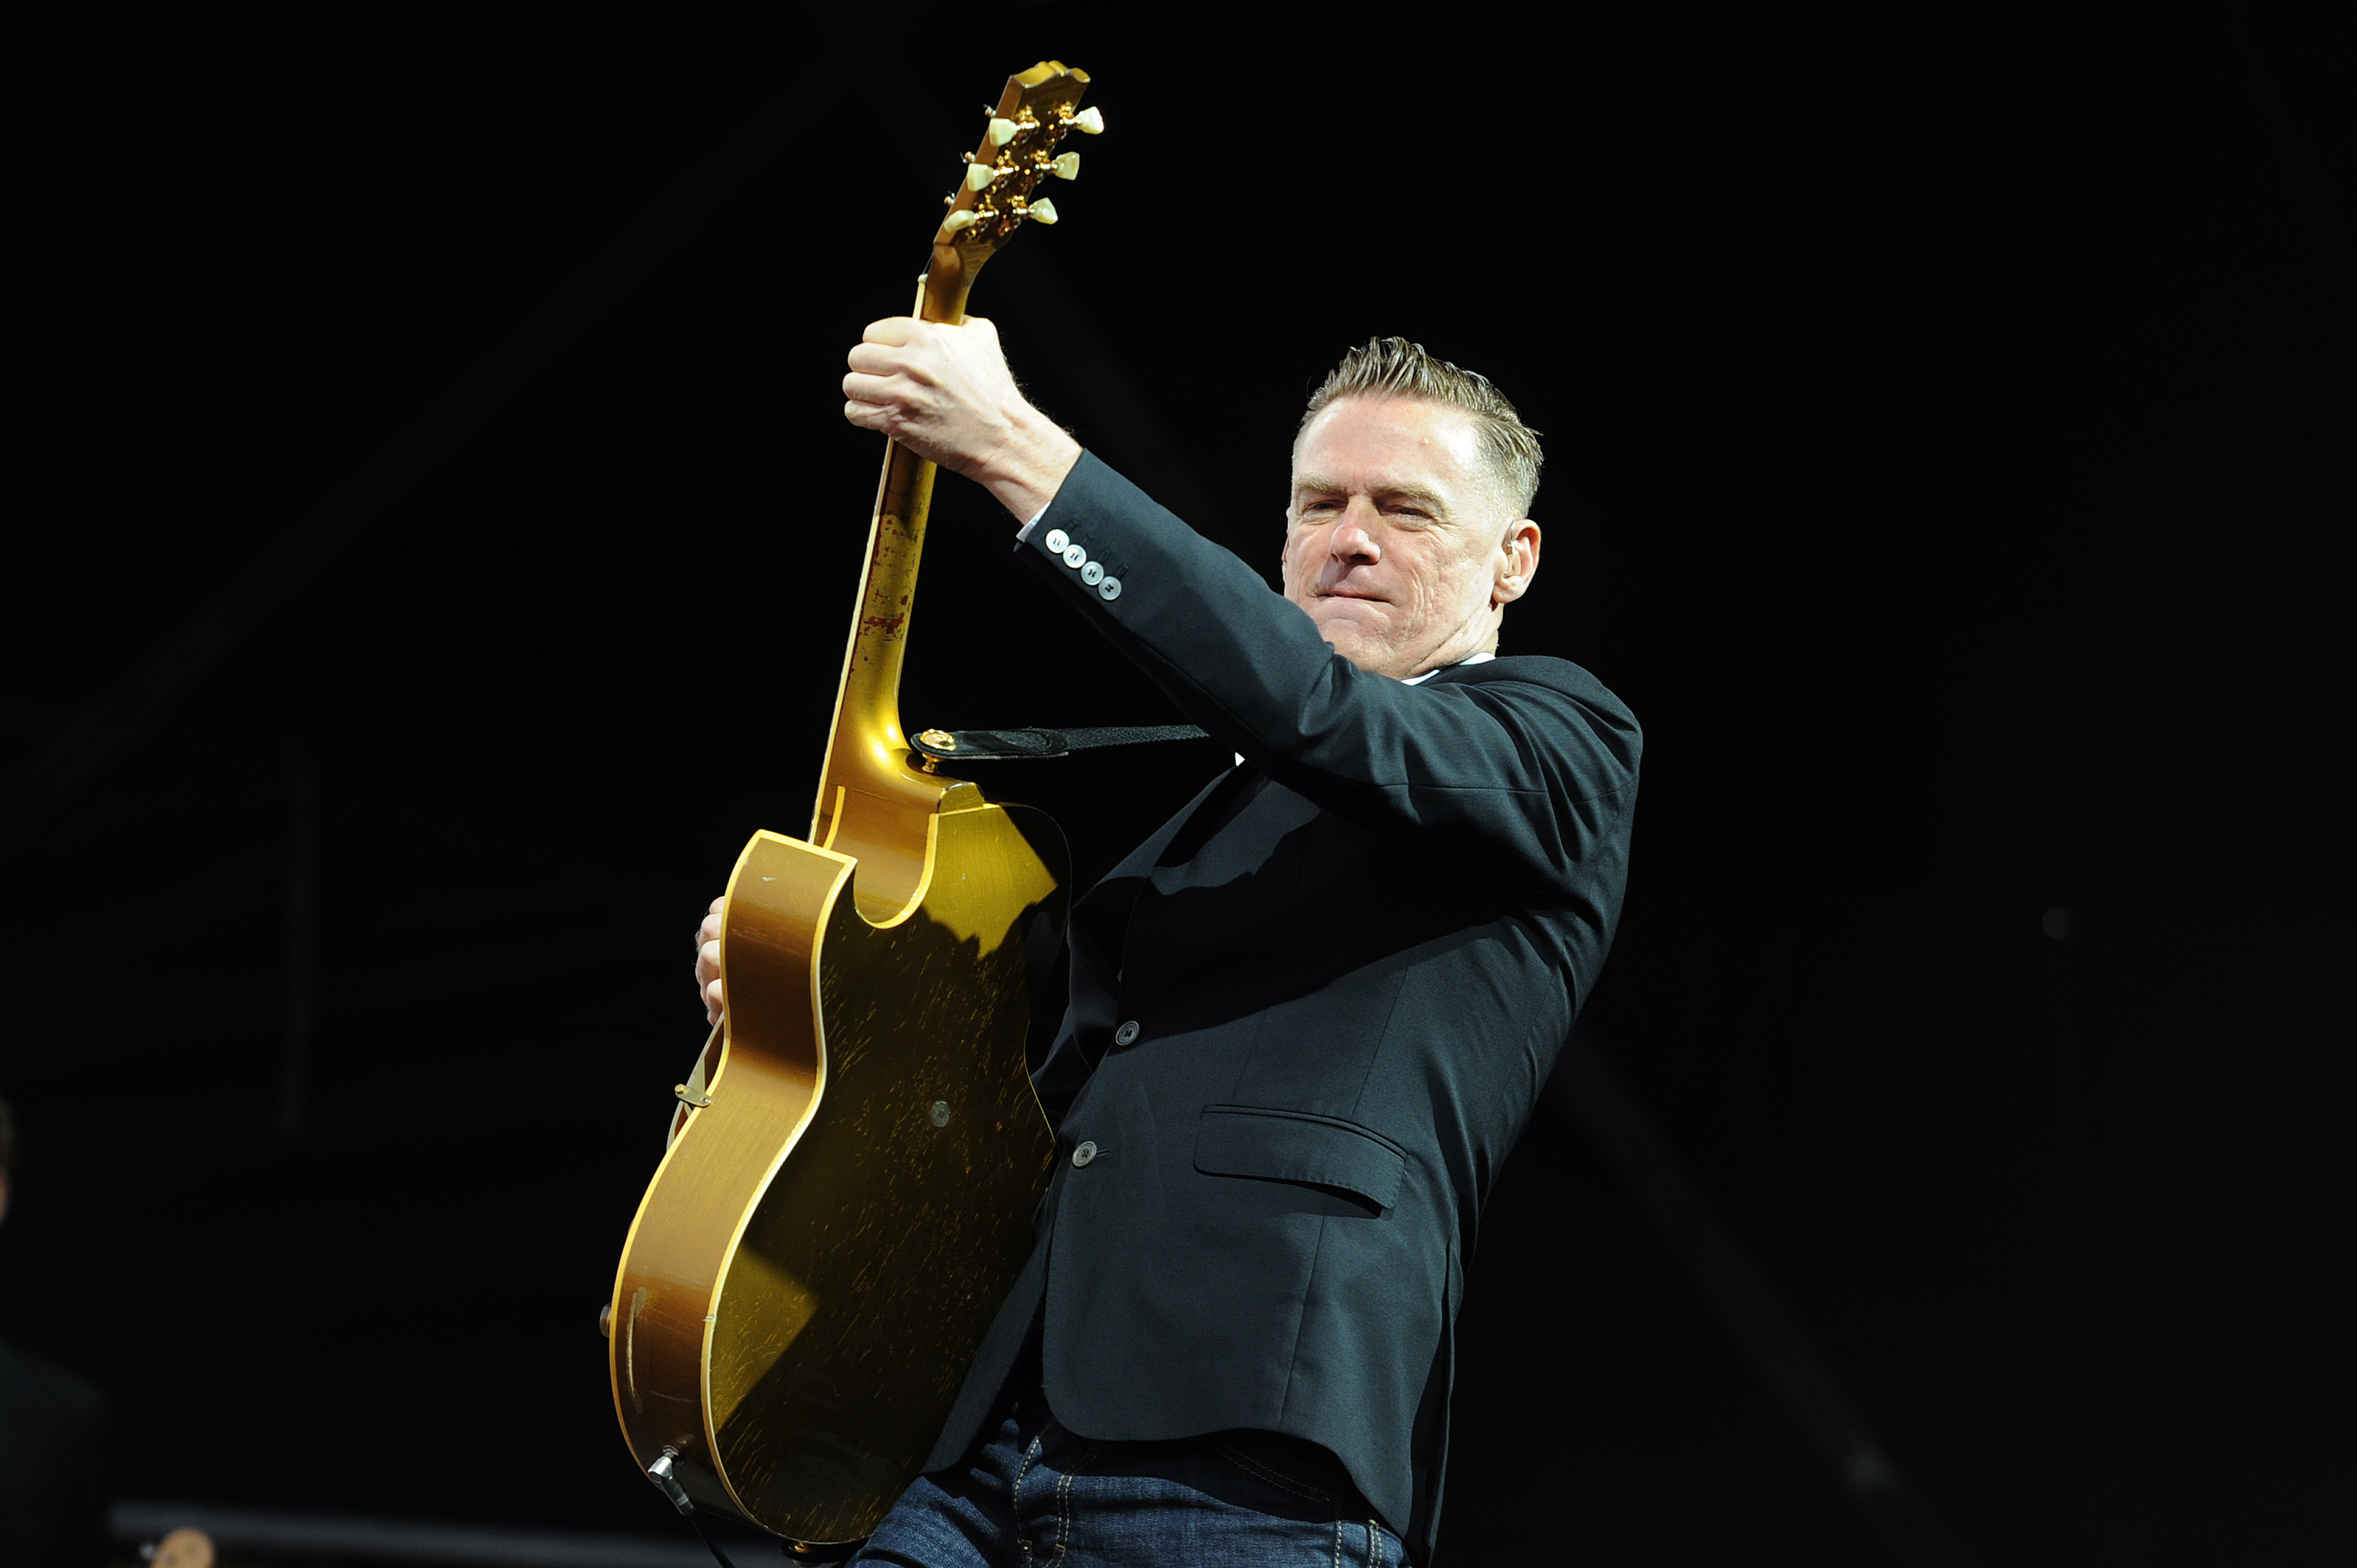 Bryan Adams on stage at MoFest.